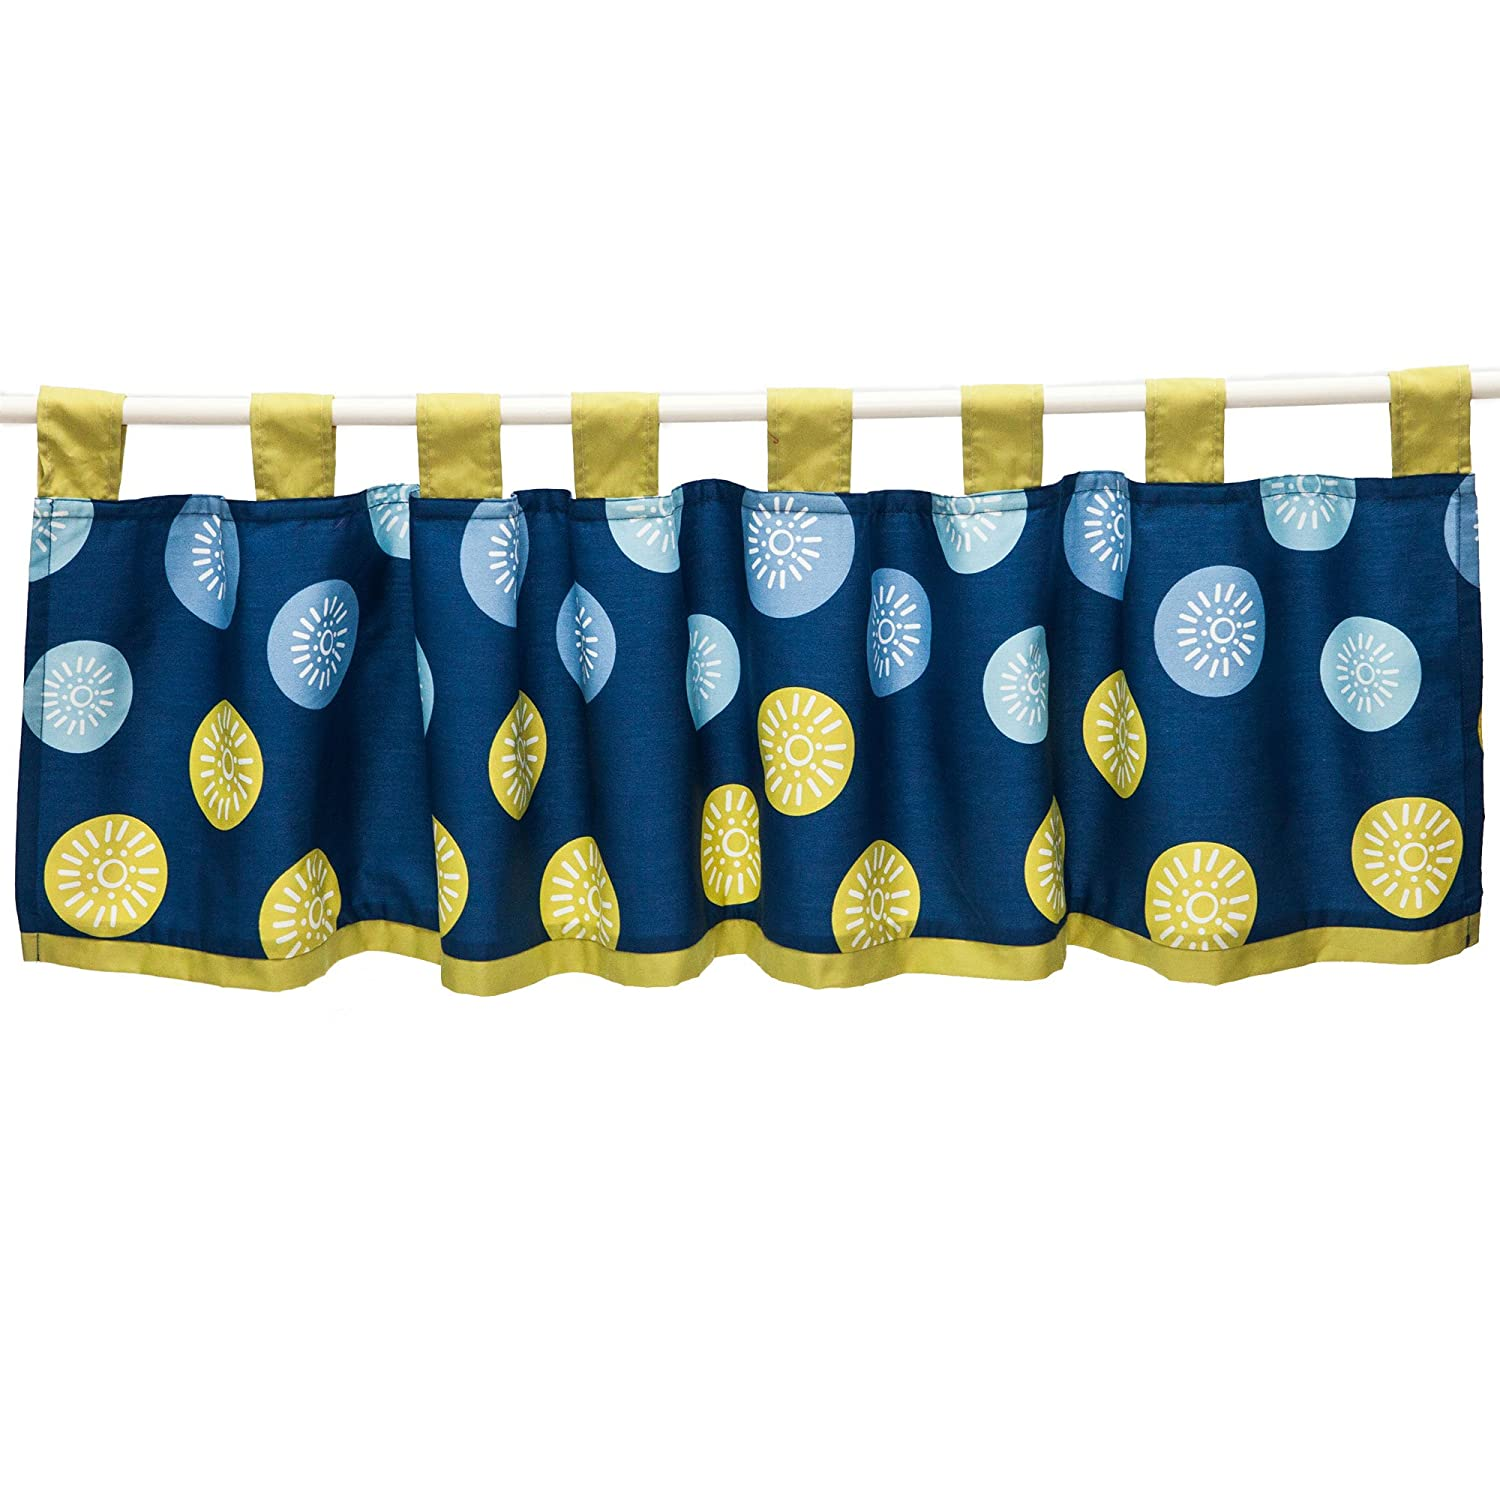 Space Bot Window Valance by True Baby Farallon Brands WVTBSB-01